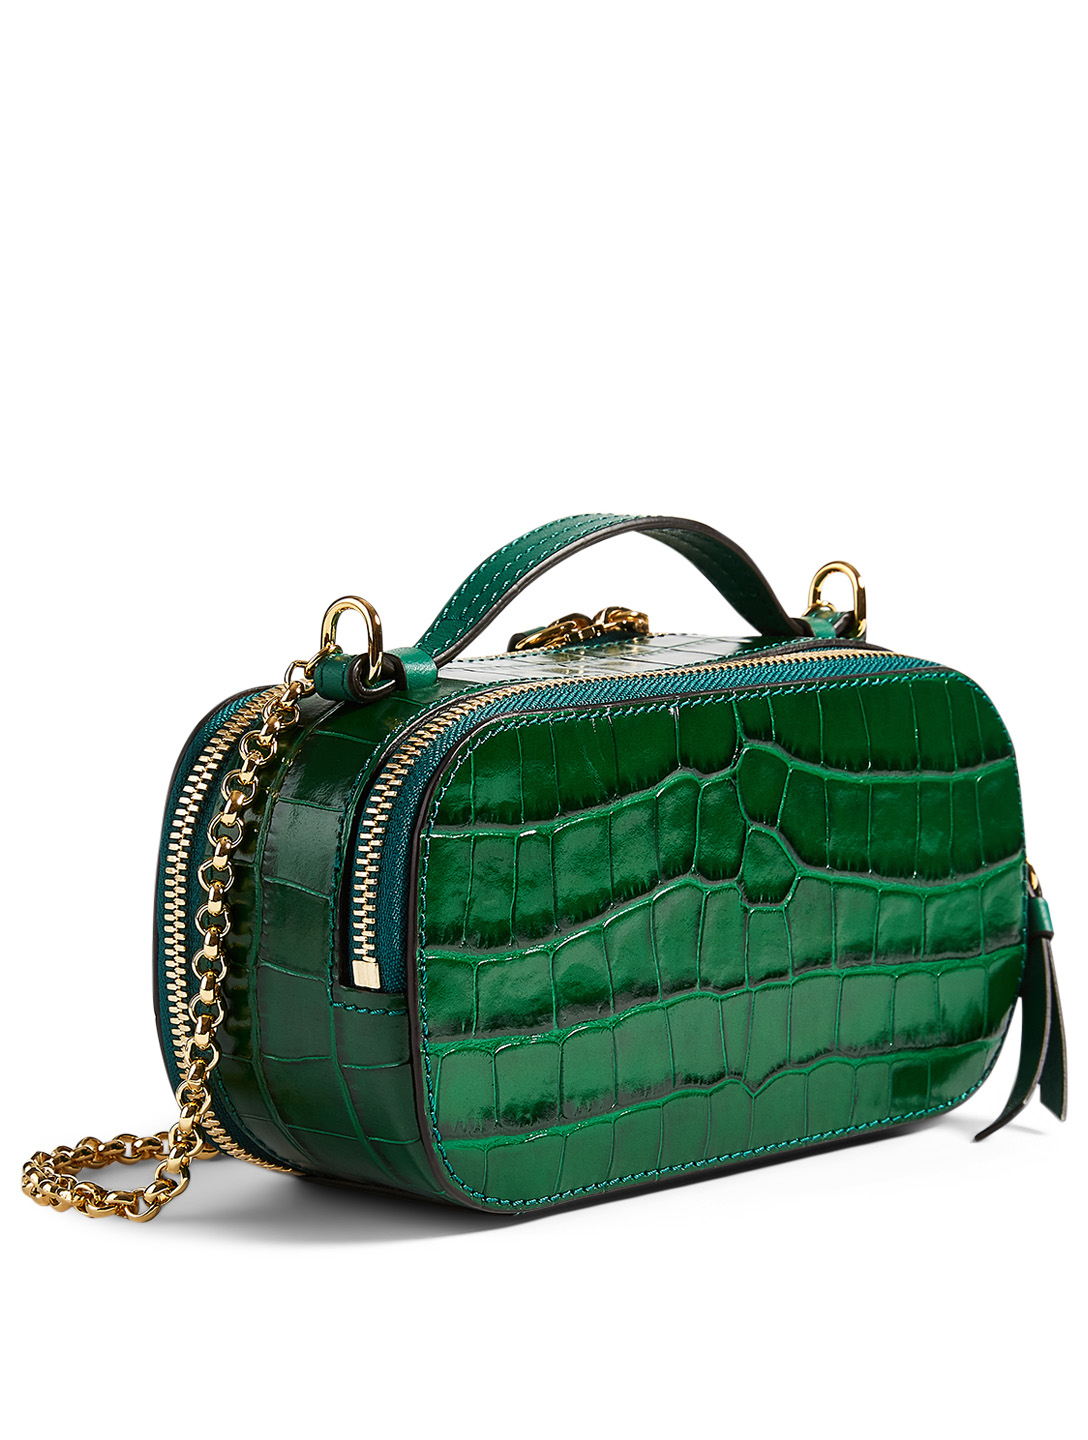 CHLOÉ Chloé C Leather Case Bag Women's Green